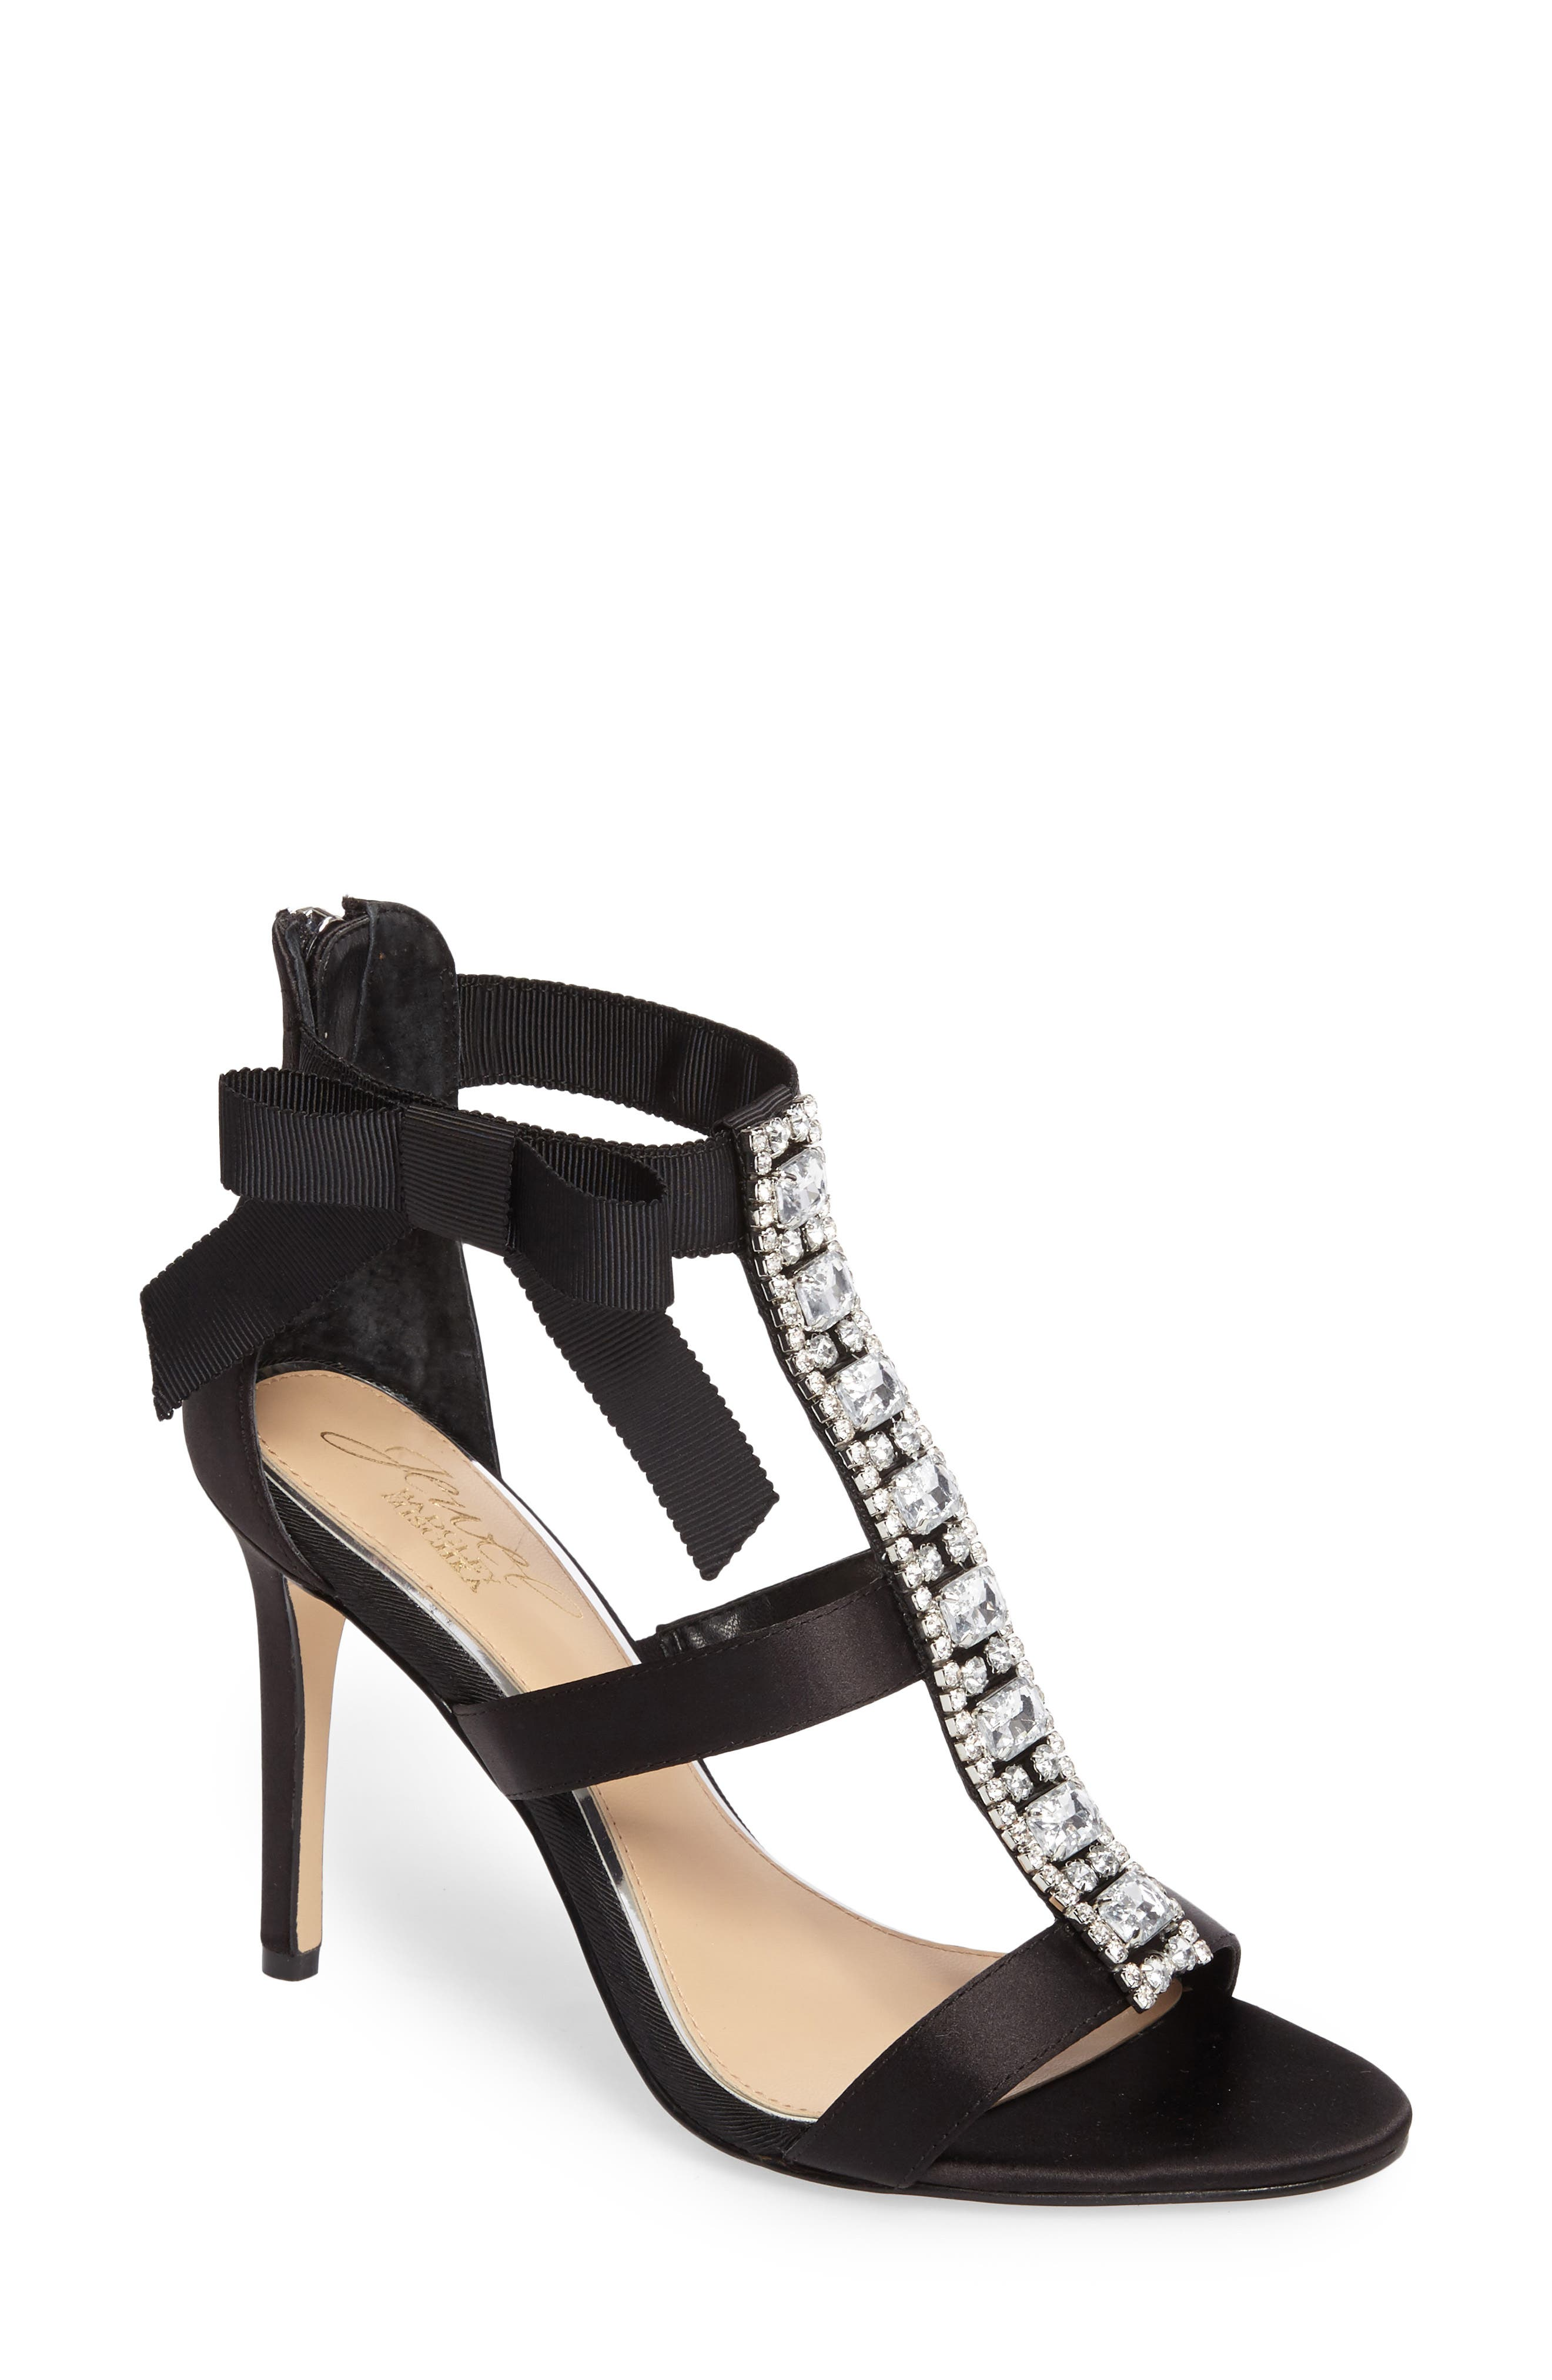 Henderson Embellished Bow Sandal,                         Main,                         color, Black Satin